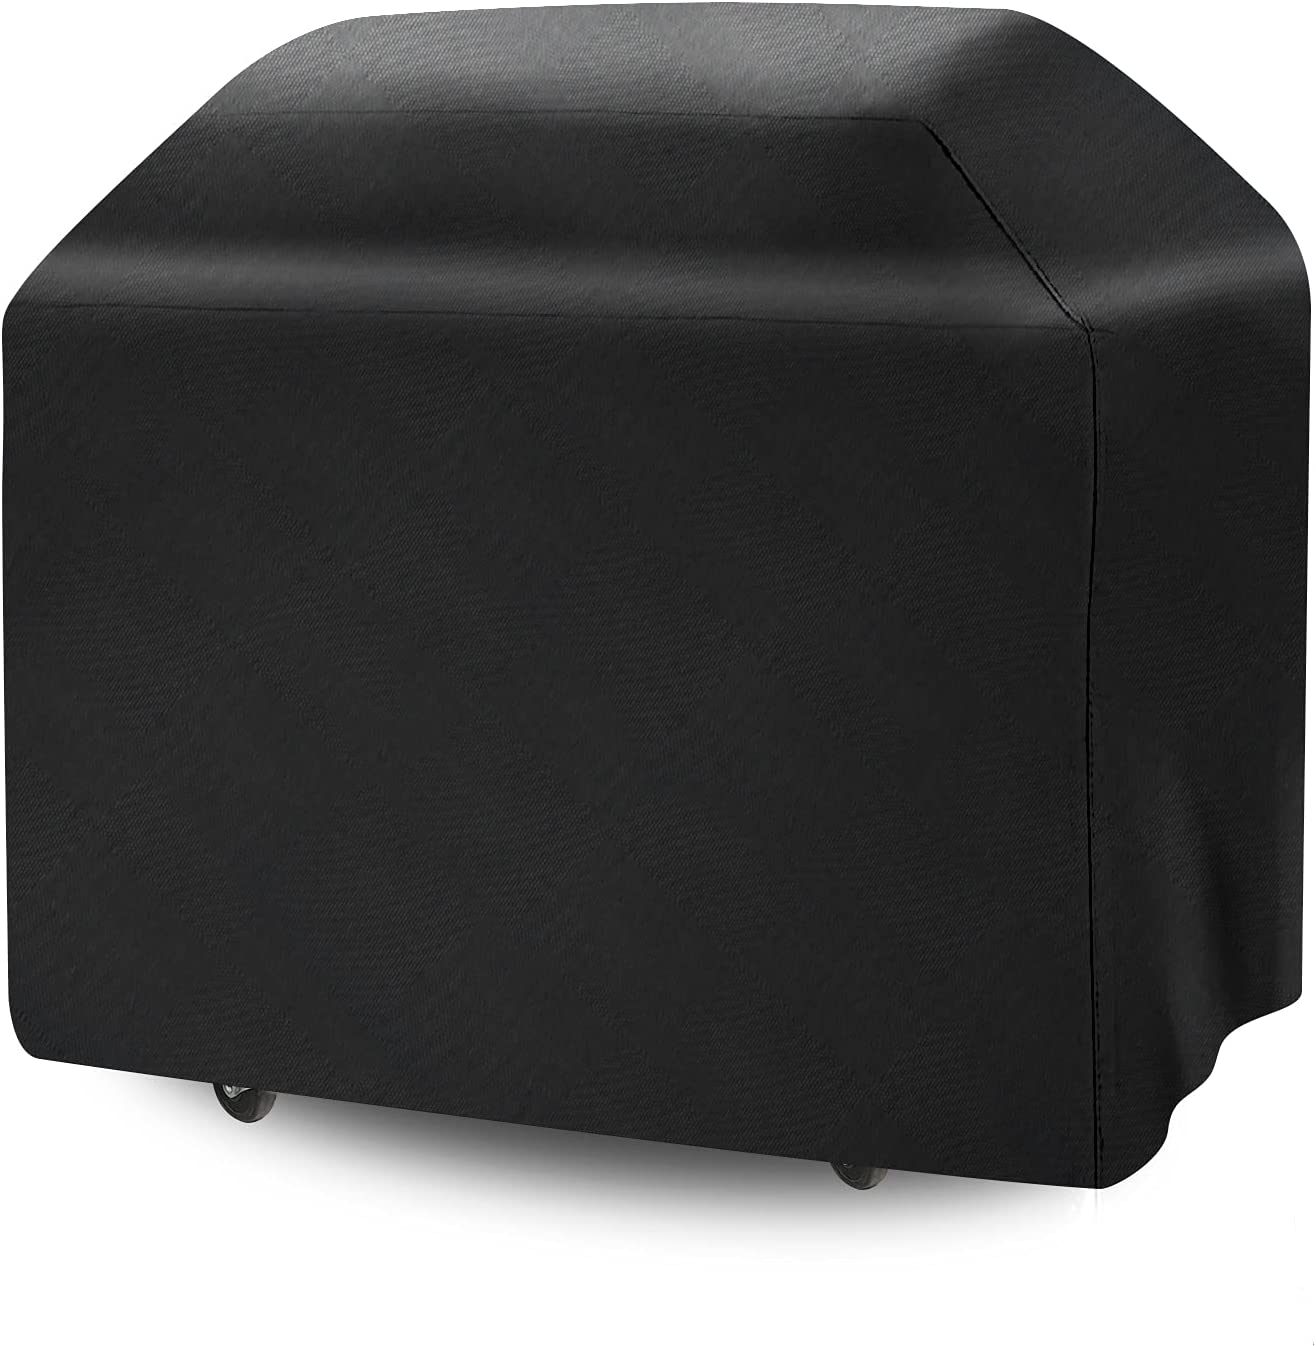 Mancro Grill Cover 58 Inch, Large Waterproof & Outdoor Gas Grill Cover, Weather & Fade Resistant Heavy Duty Grill Cover, 3-4 Burner BBQ Grill Covers Compatible for Weber CharBroil Nexgrill Brinkmann